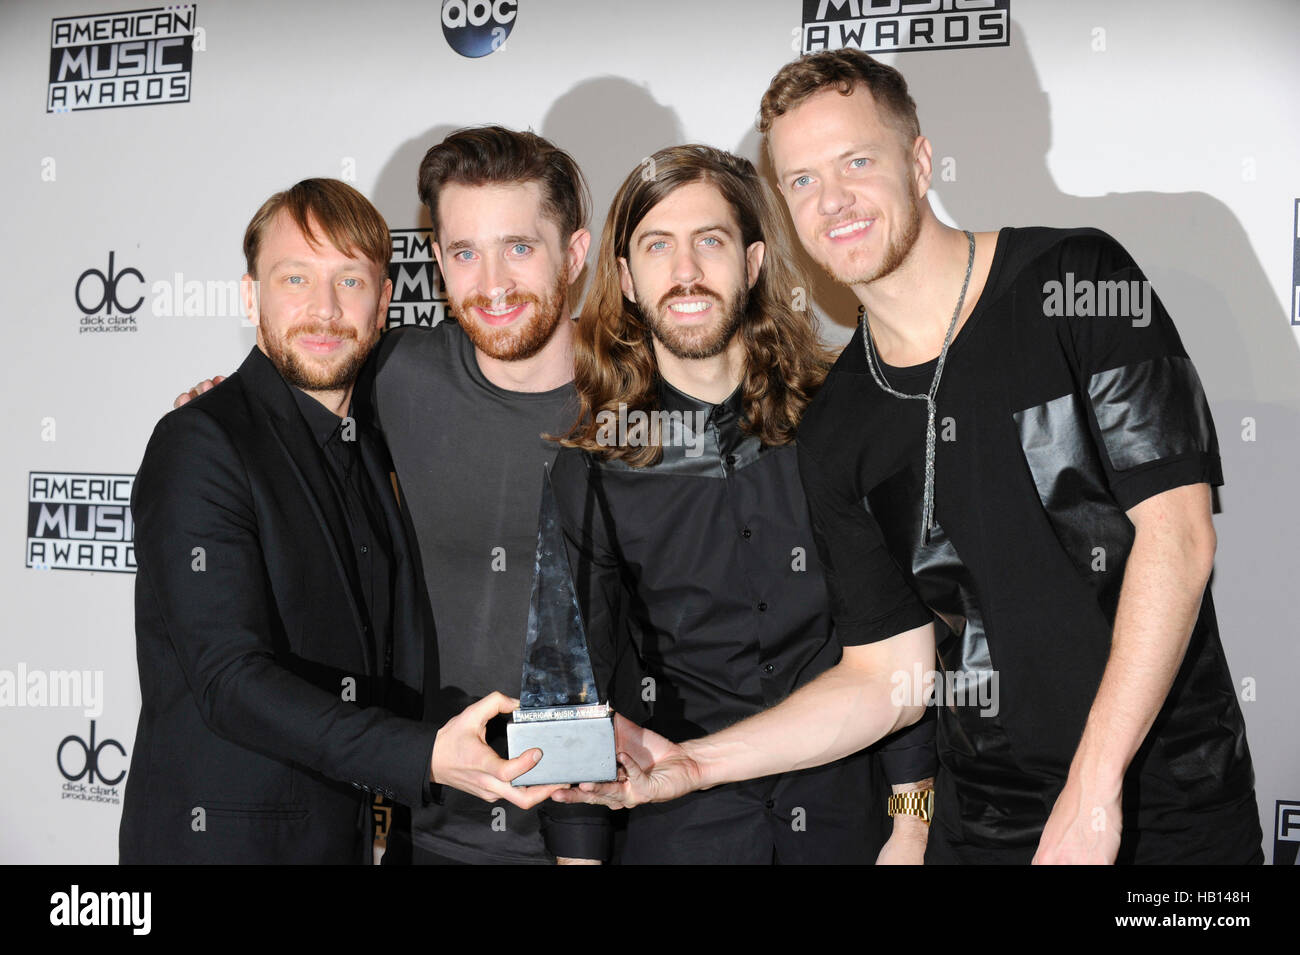 Imagine Dragons attends the press room for the American Music Awards at Nokia Theatre L.A. Live on November 23, - Stock Image